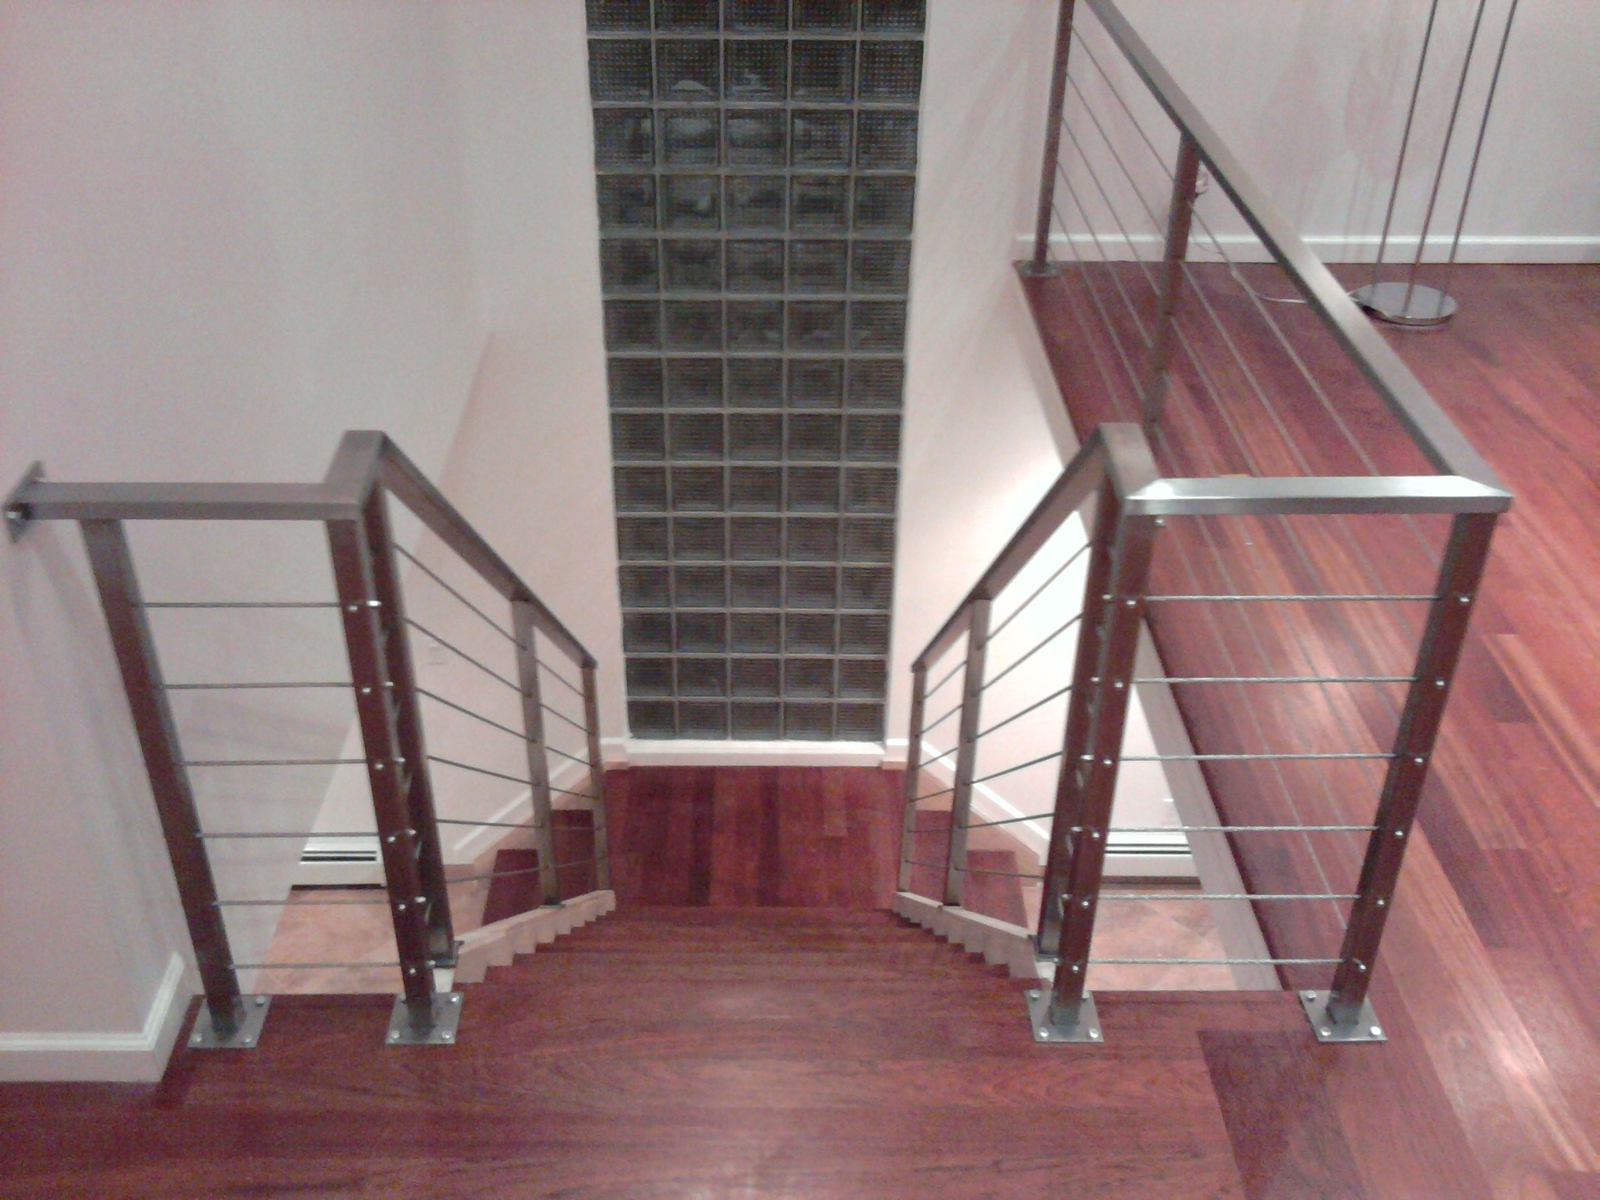 Stainless steel frame with cable railing